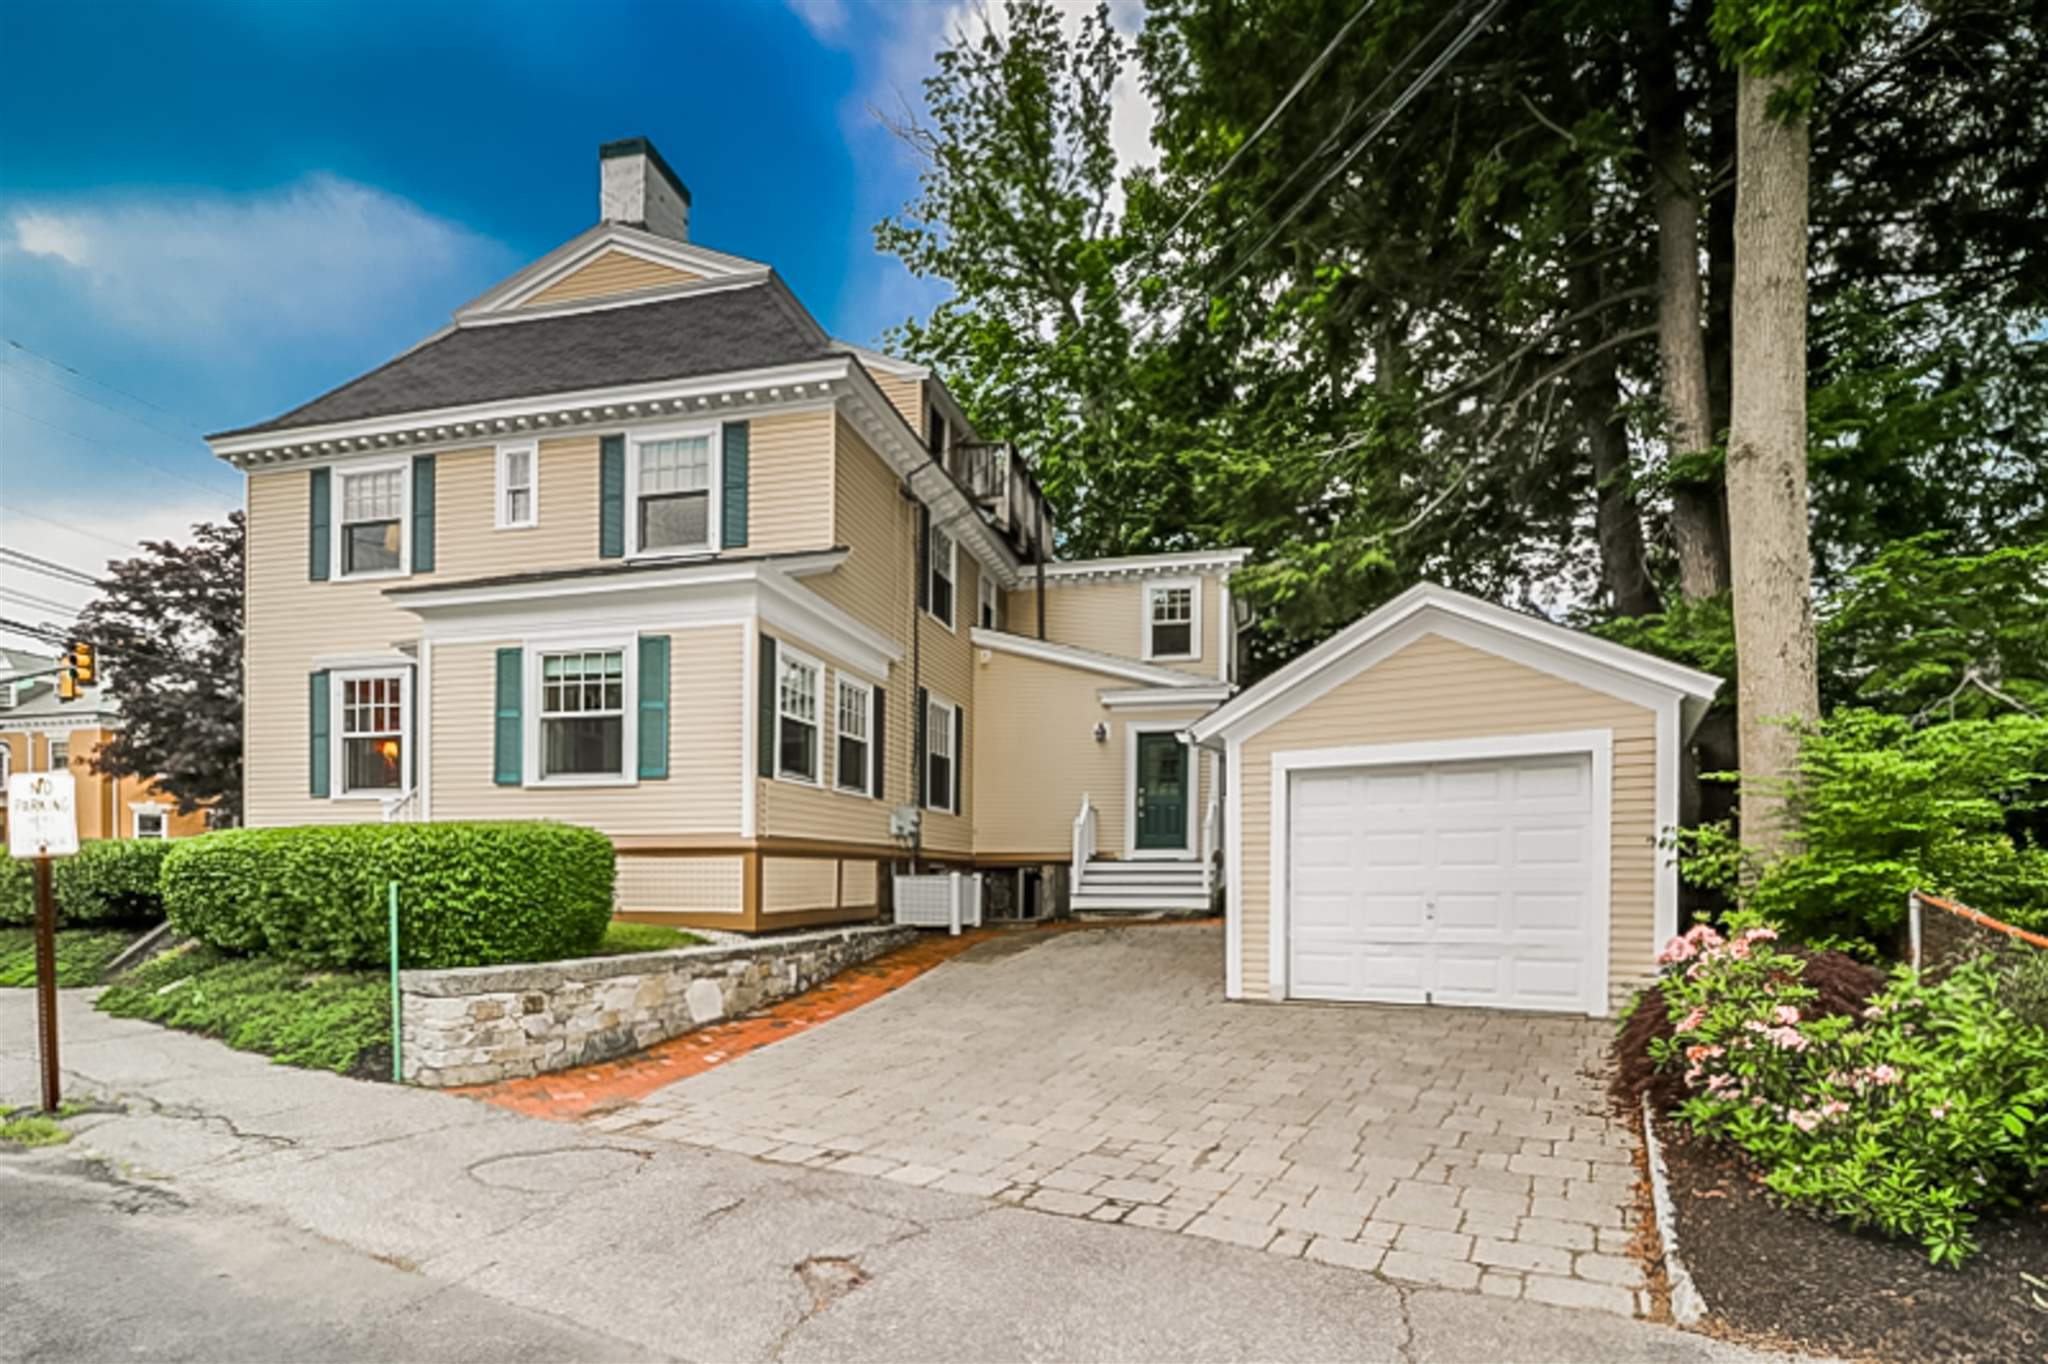 Photo of 338 Middle Street Portsmouth NH 03801